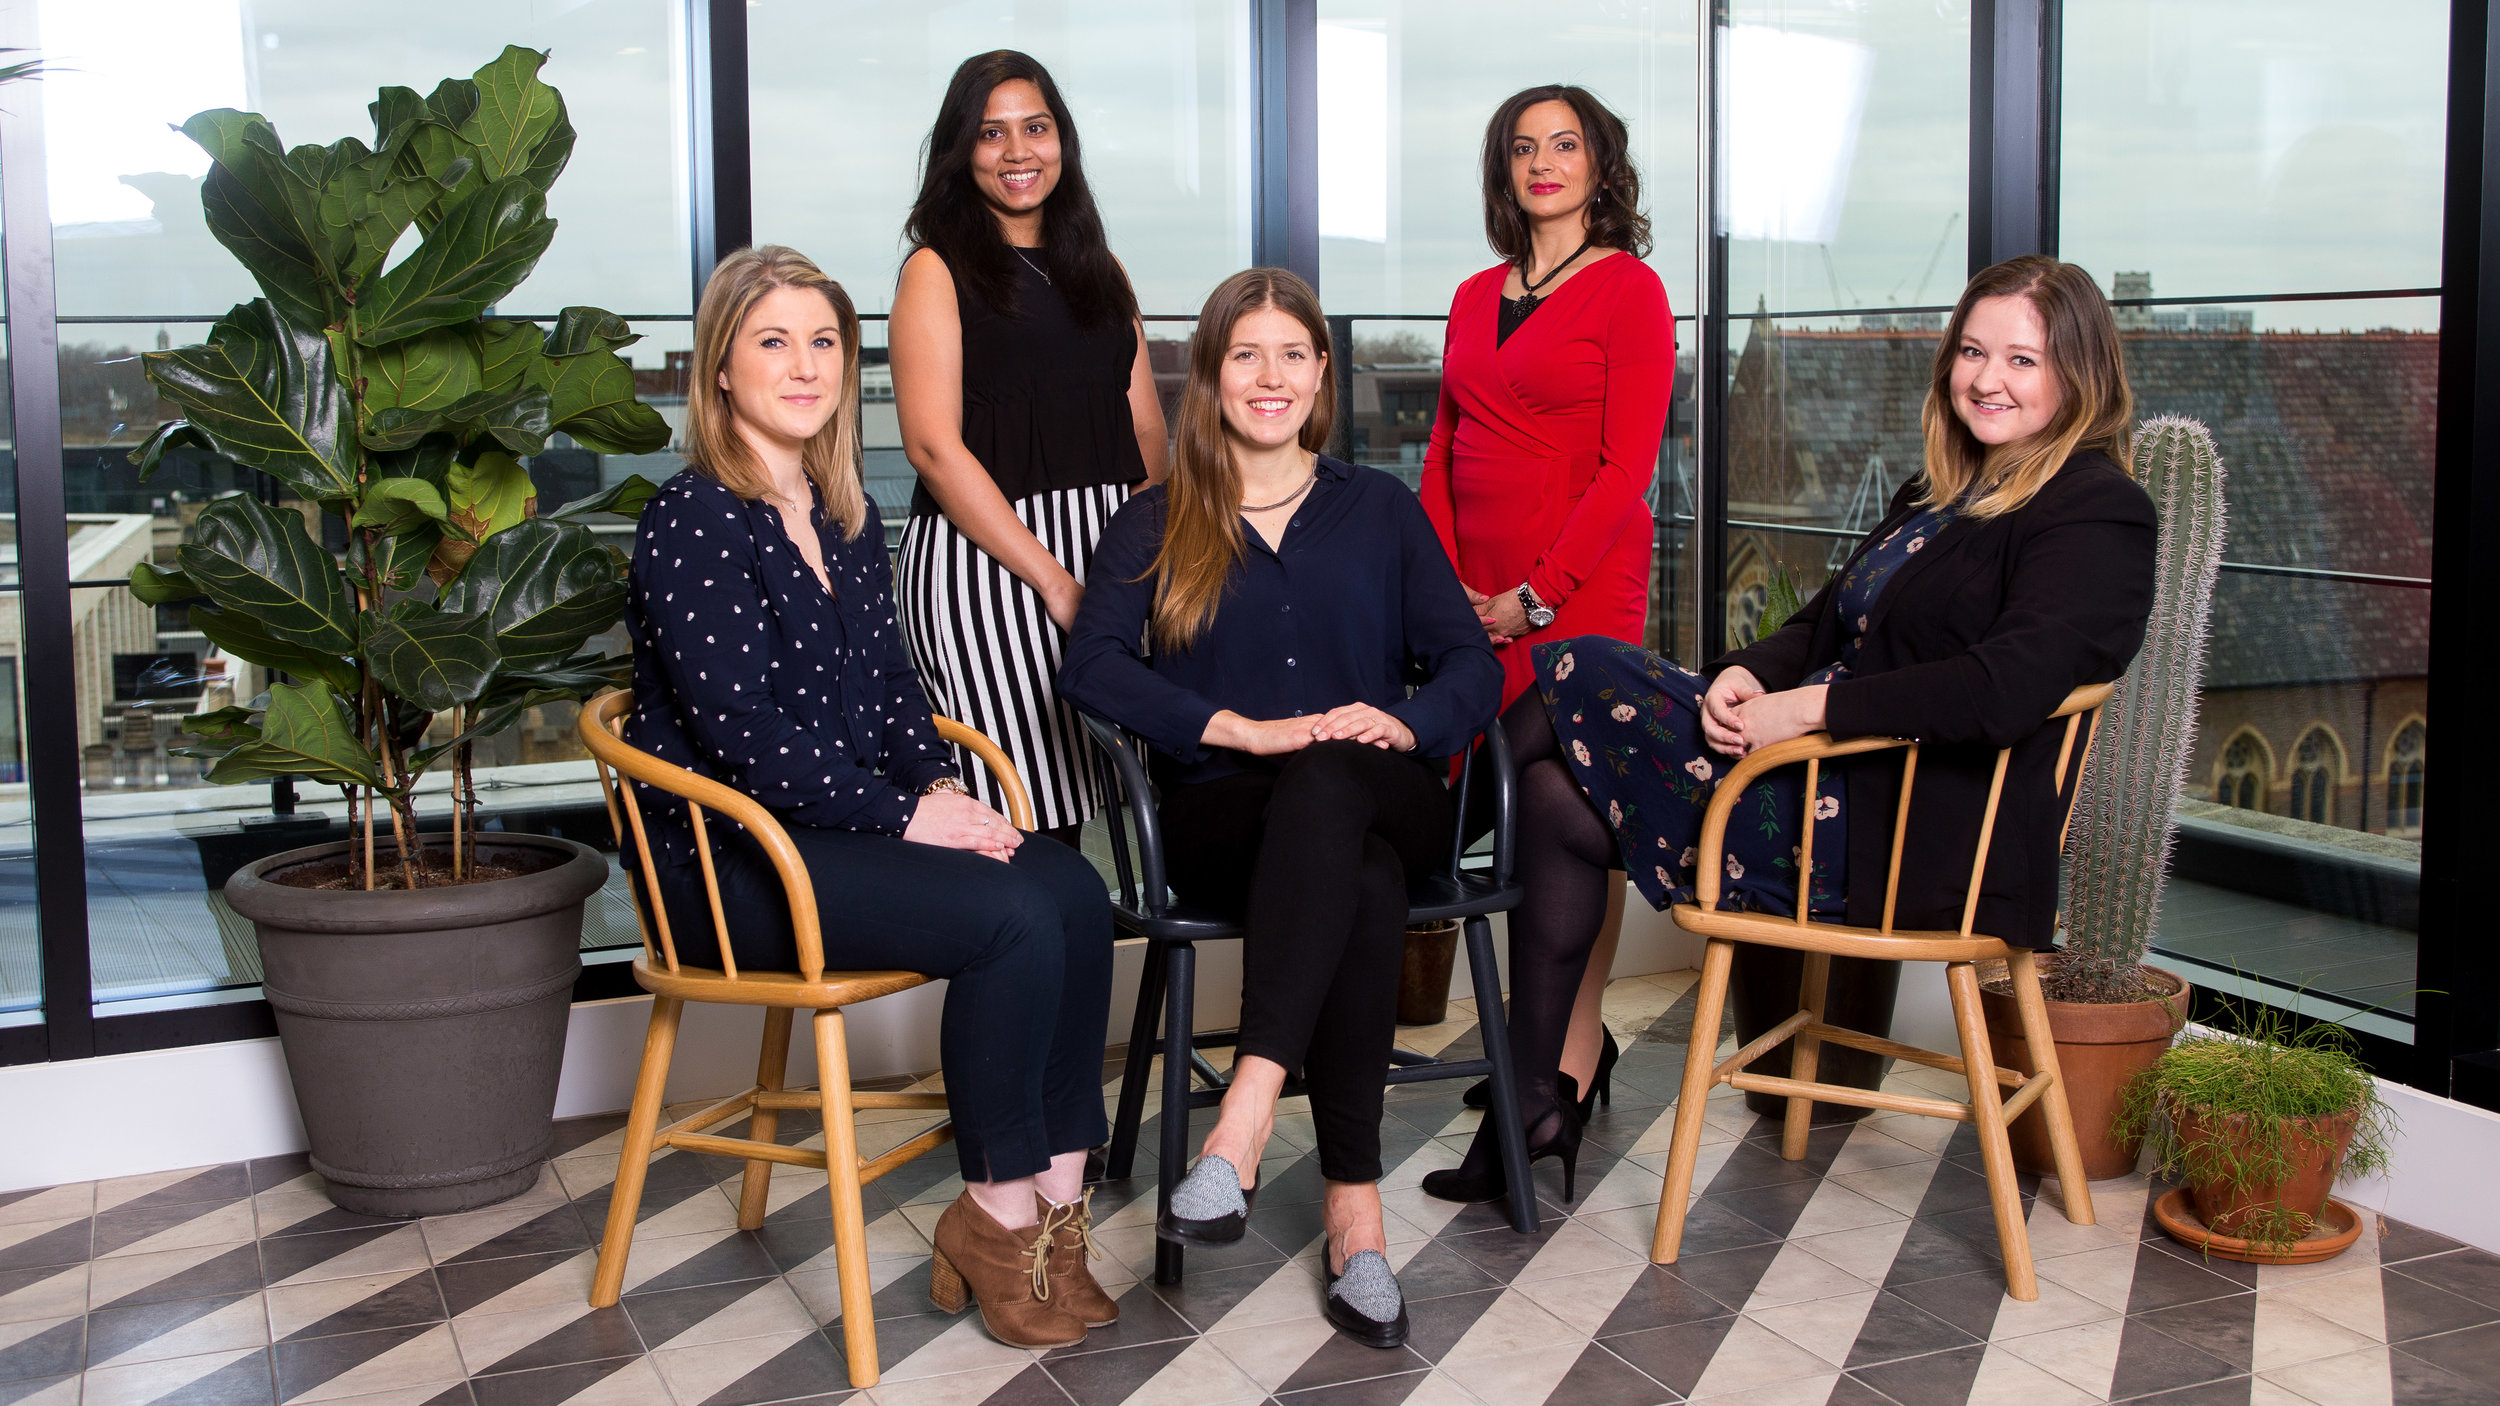 8 Barclays colleagues who were nominated in the TechWomen50 Awards